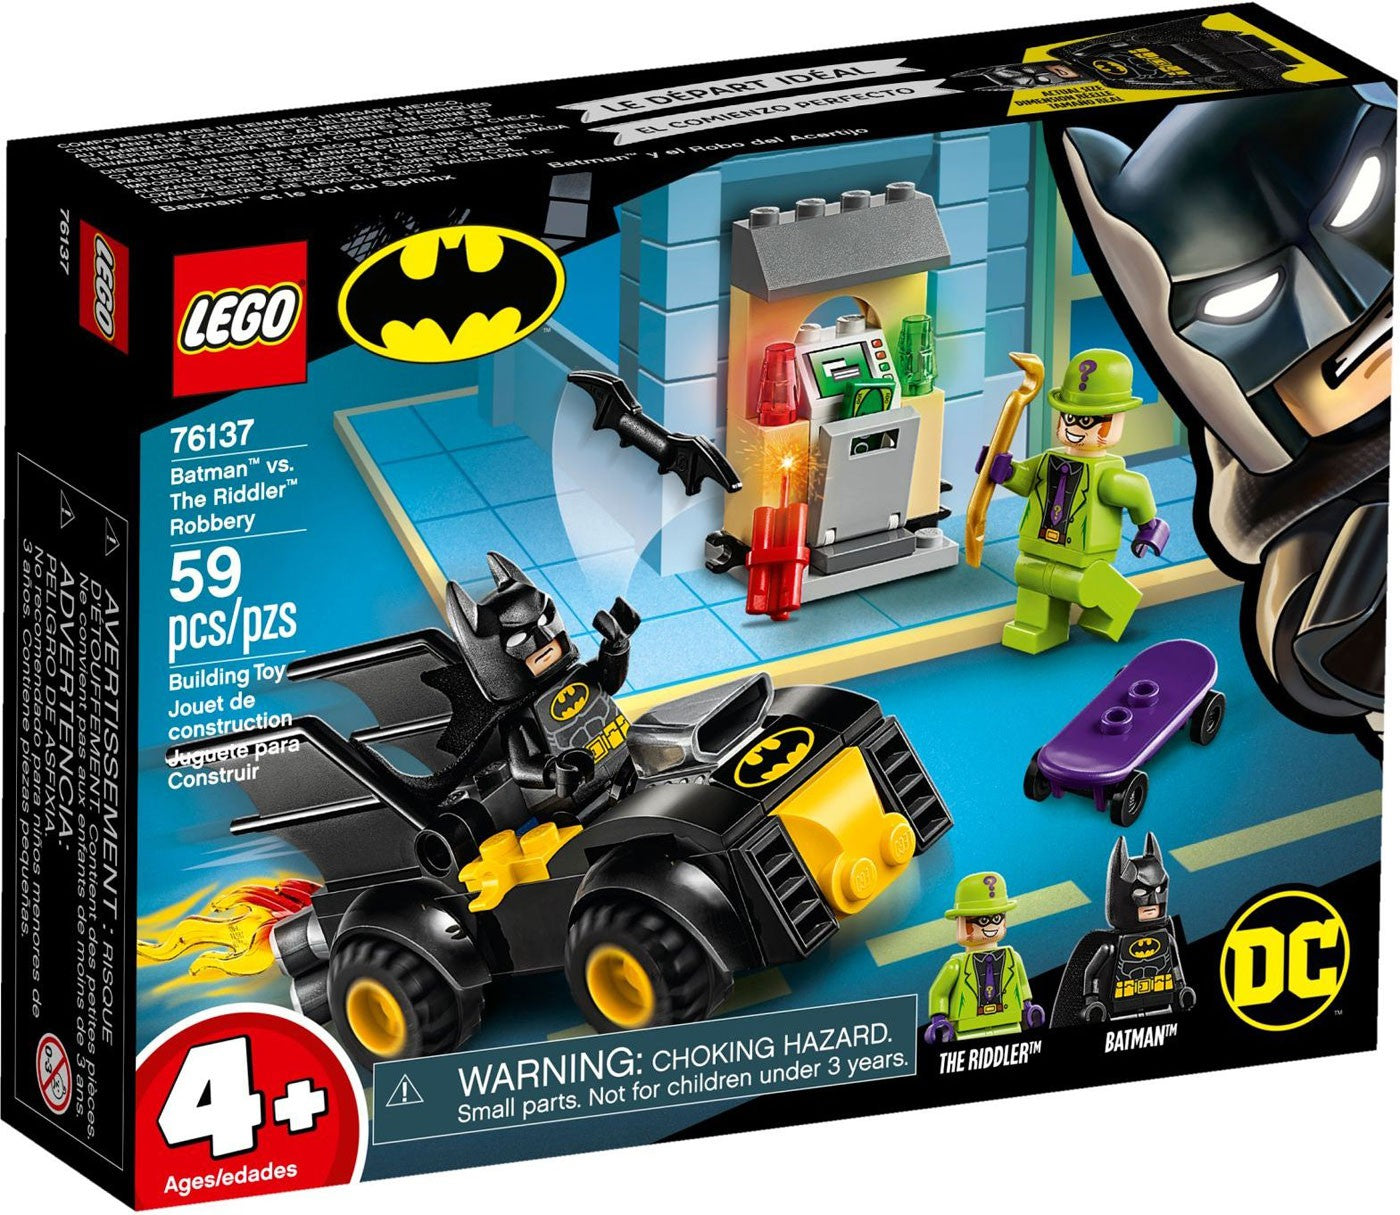 Lego Batman The Rider